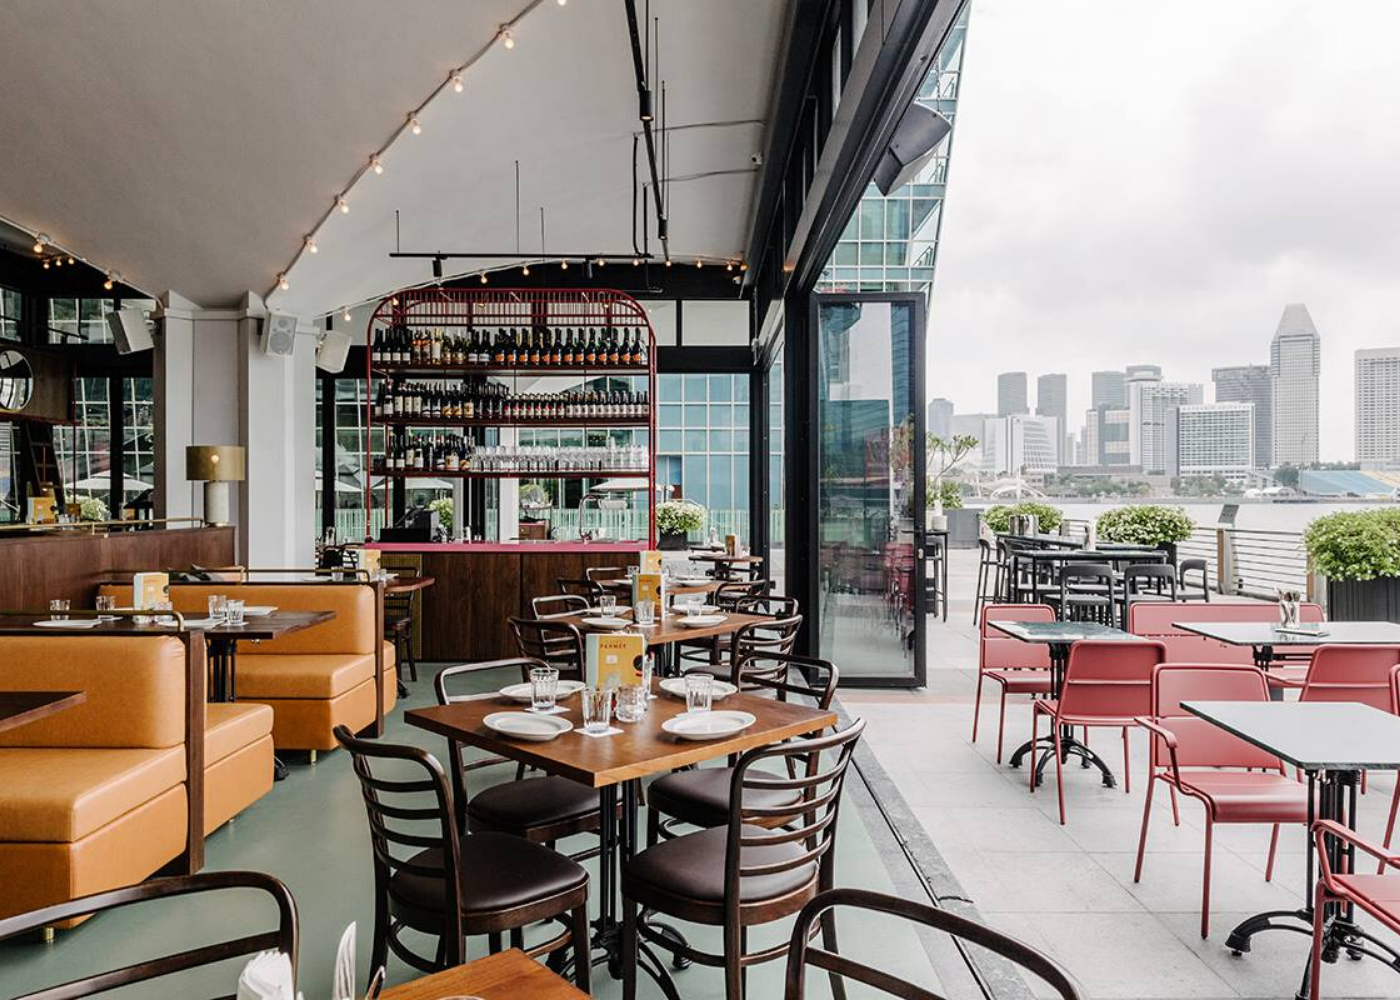 caffe fernet | Alfresco dining in Singapore